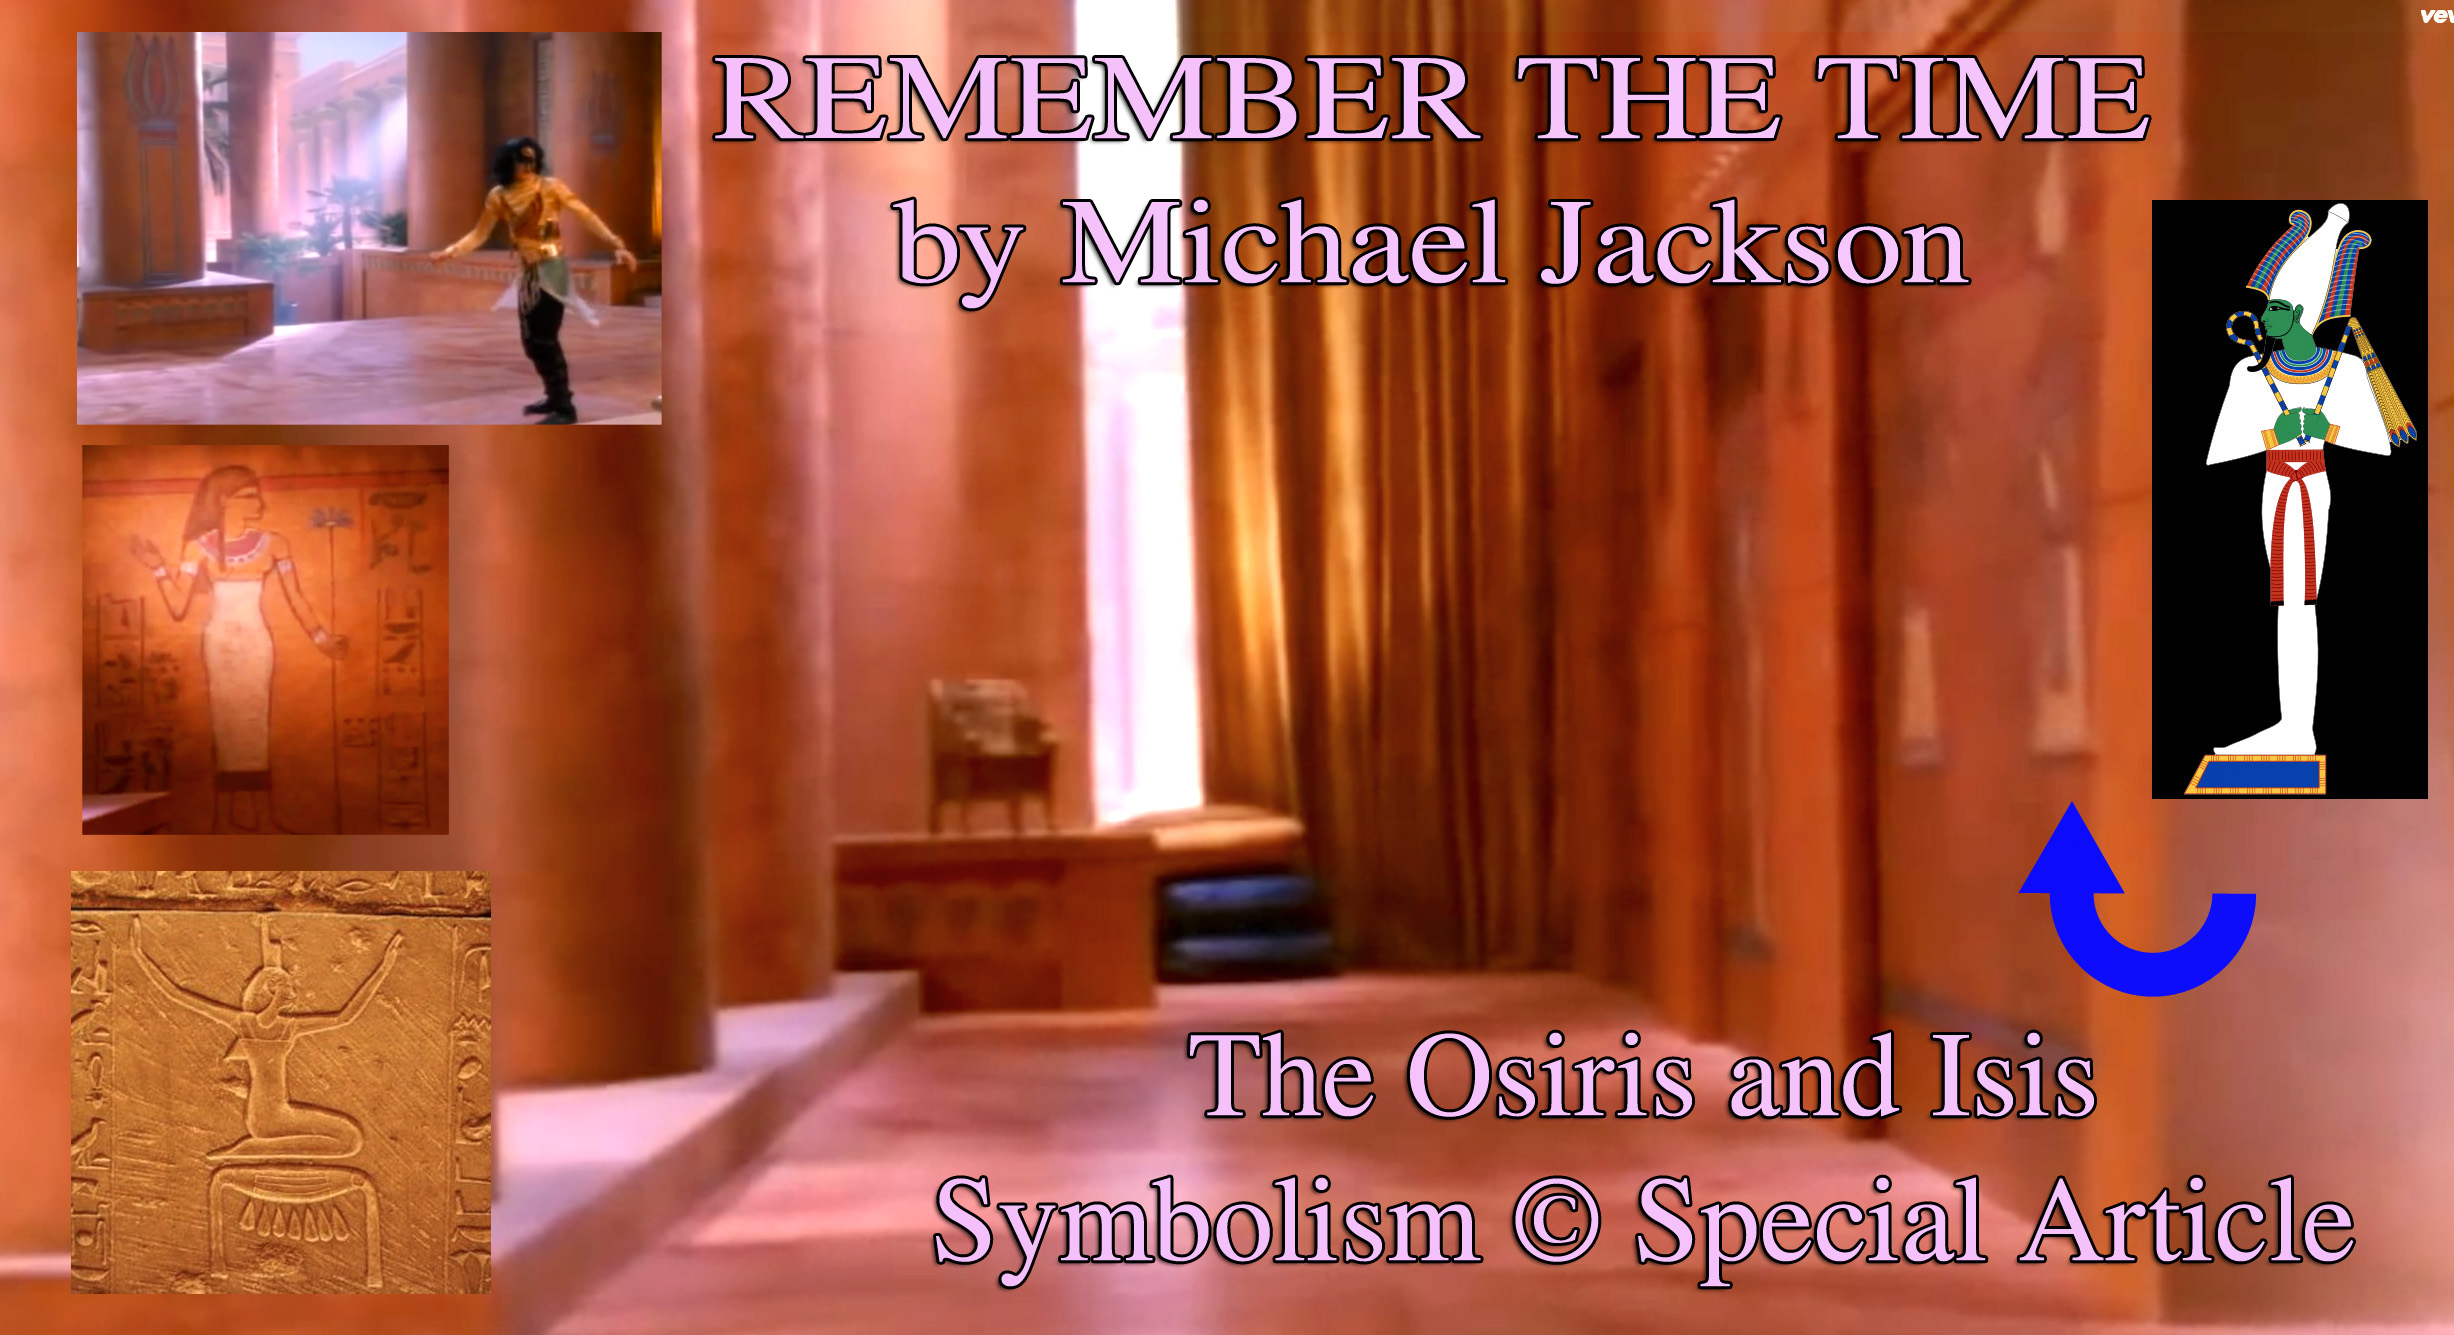 Michael Jackson And The Original Twin Soul Flame Story Of Osiris And